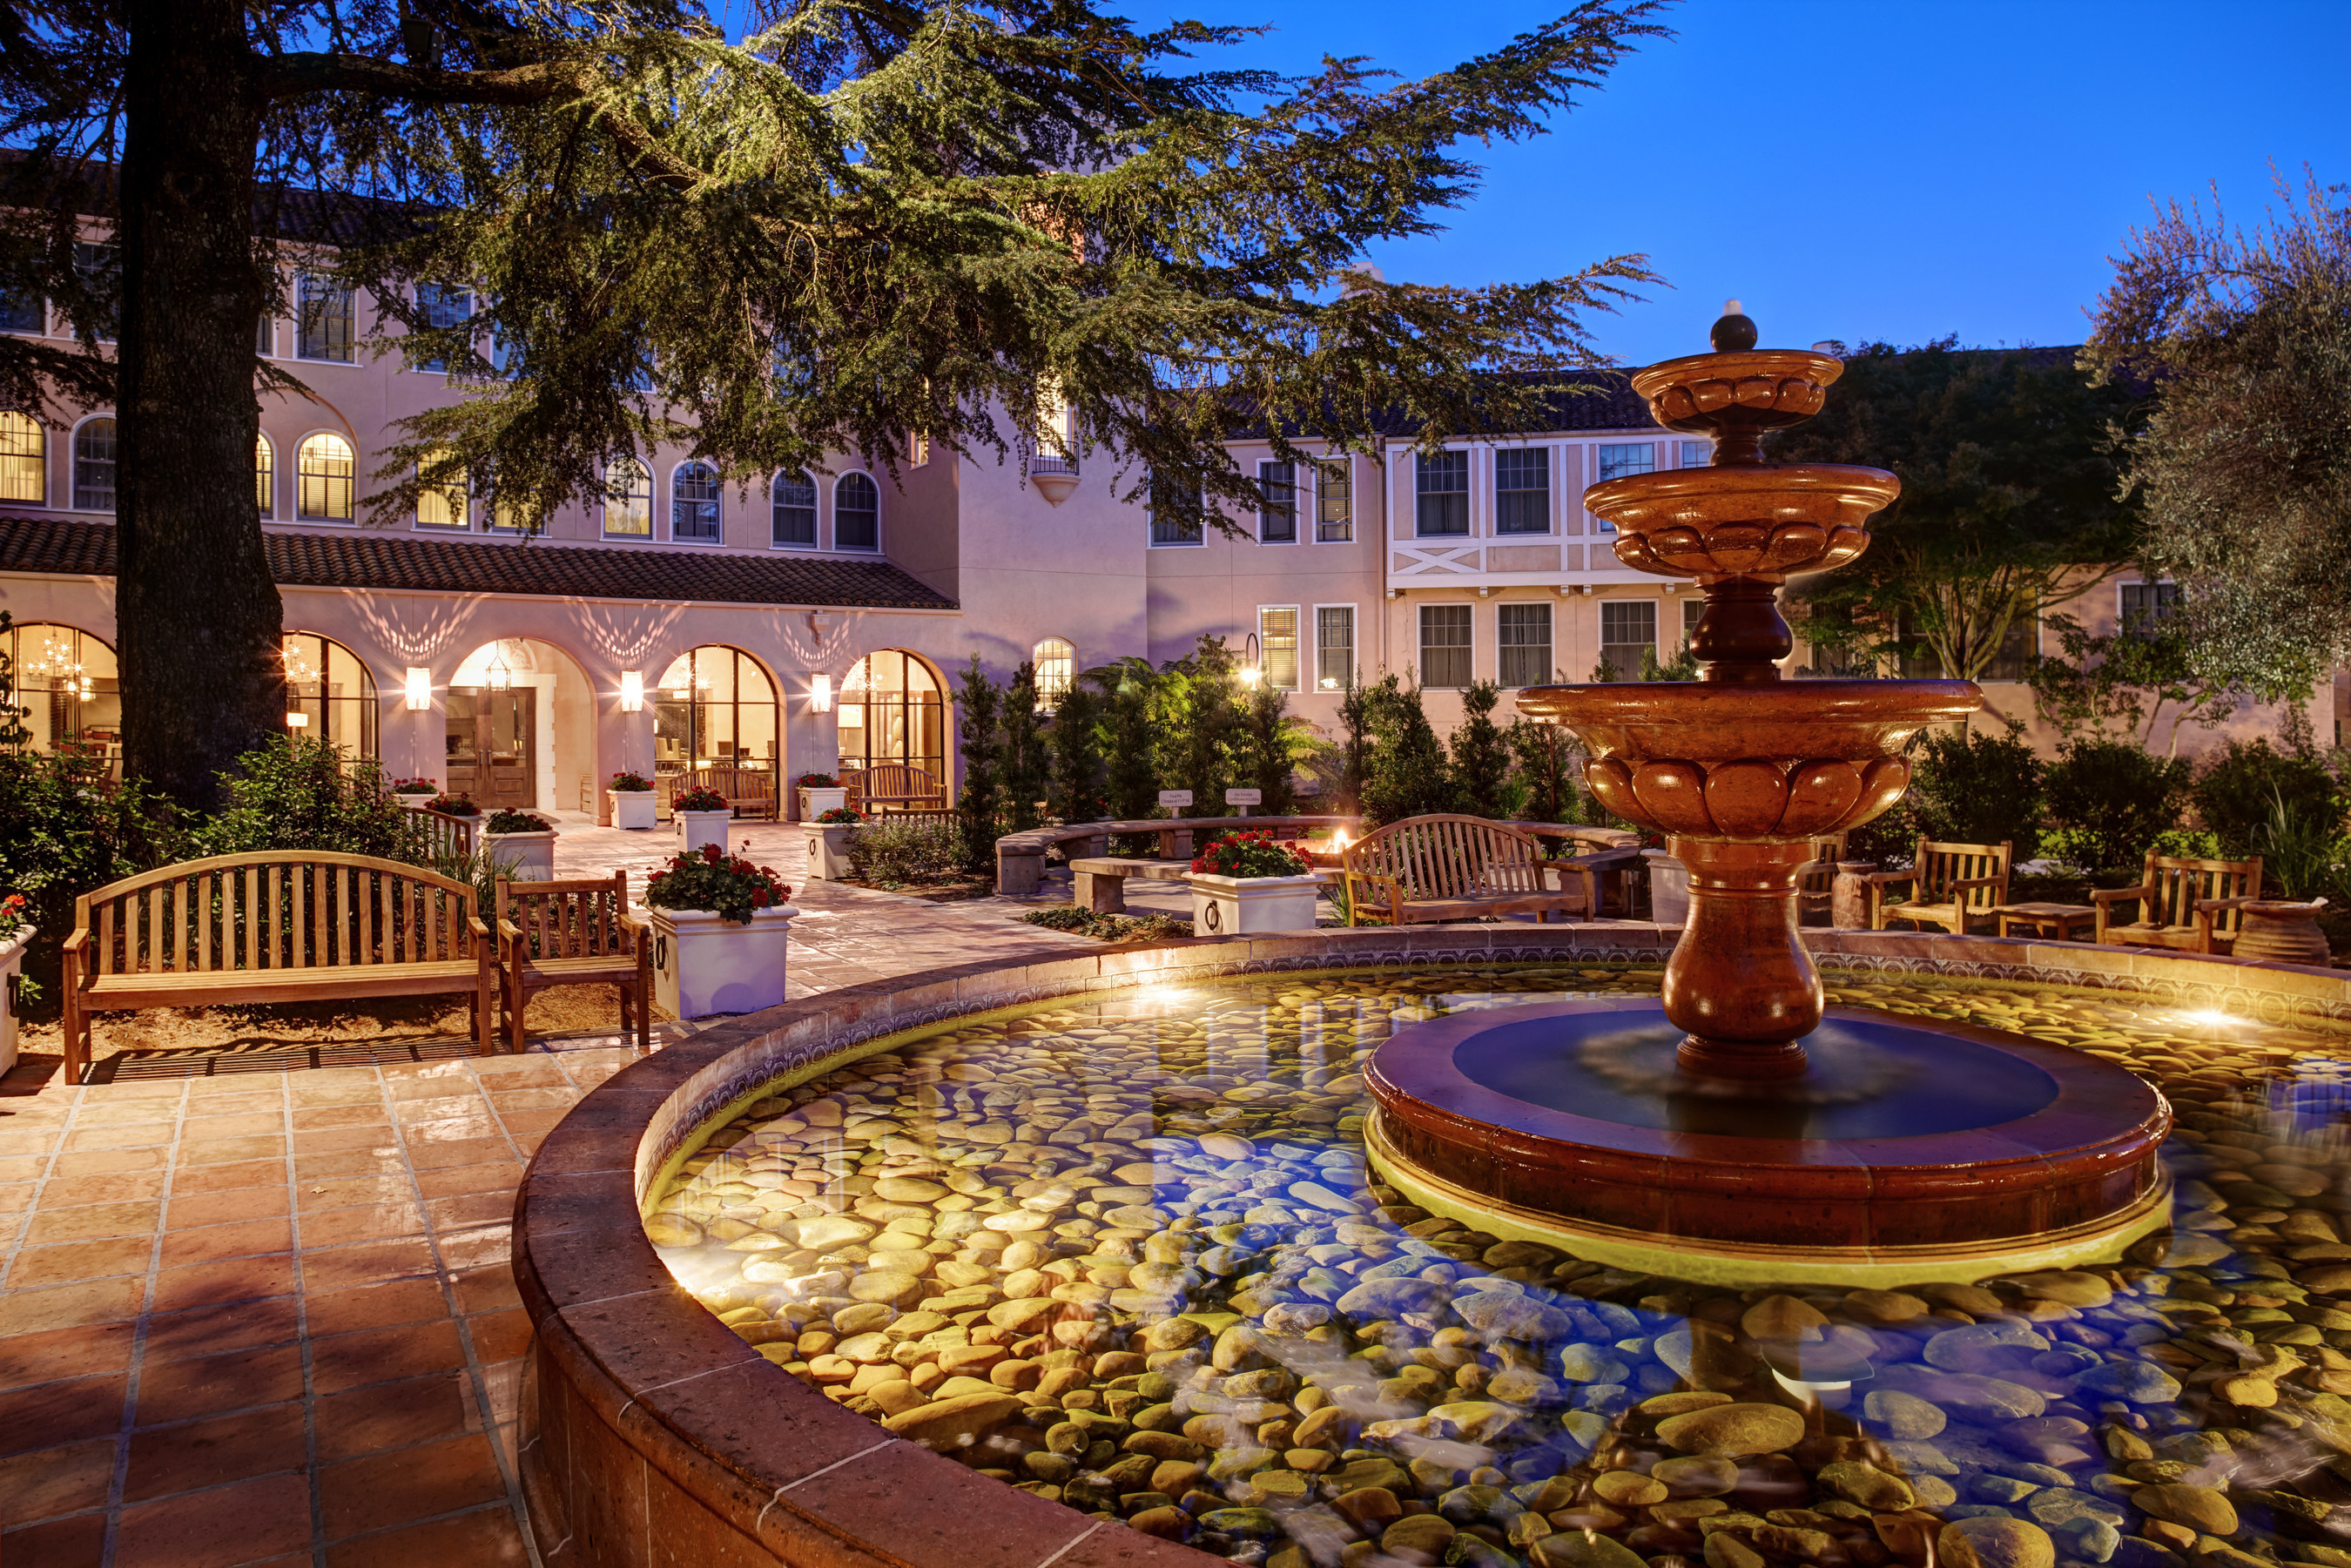 Carey Watermark Investors Incorporated acquired the remaining 25 percent interest in the Fairmont Sonoma Mission Inn & Spa, bringing its ownership of the property to 100 percent.